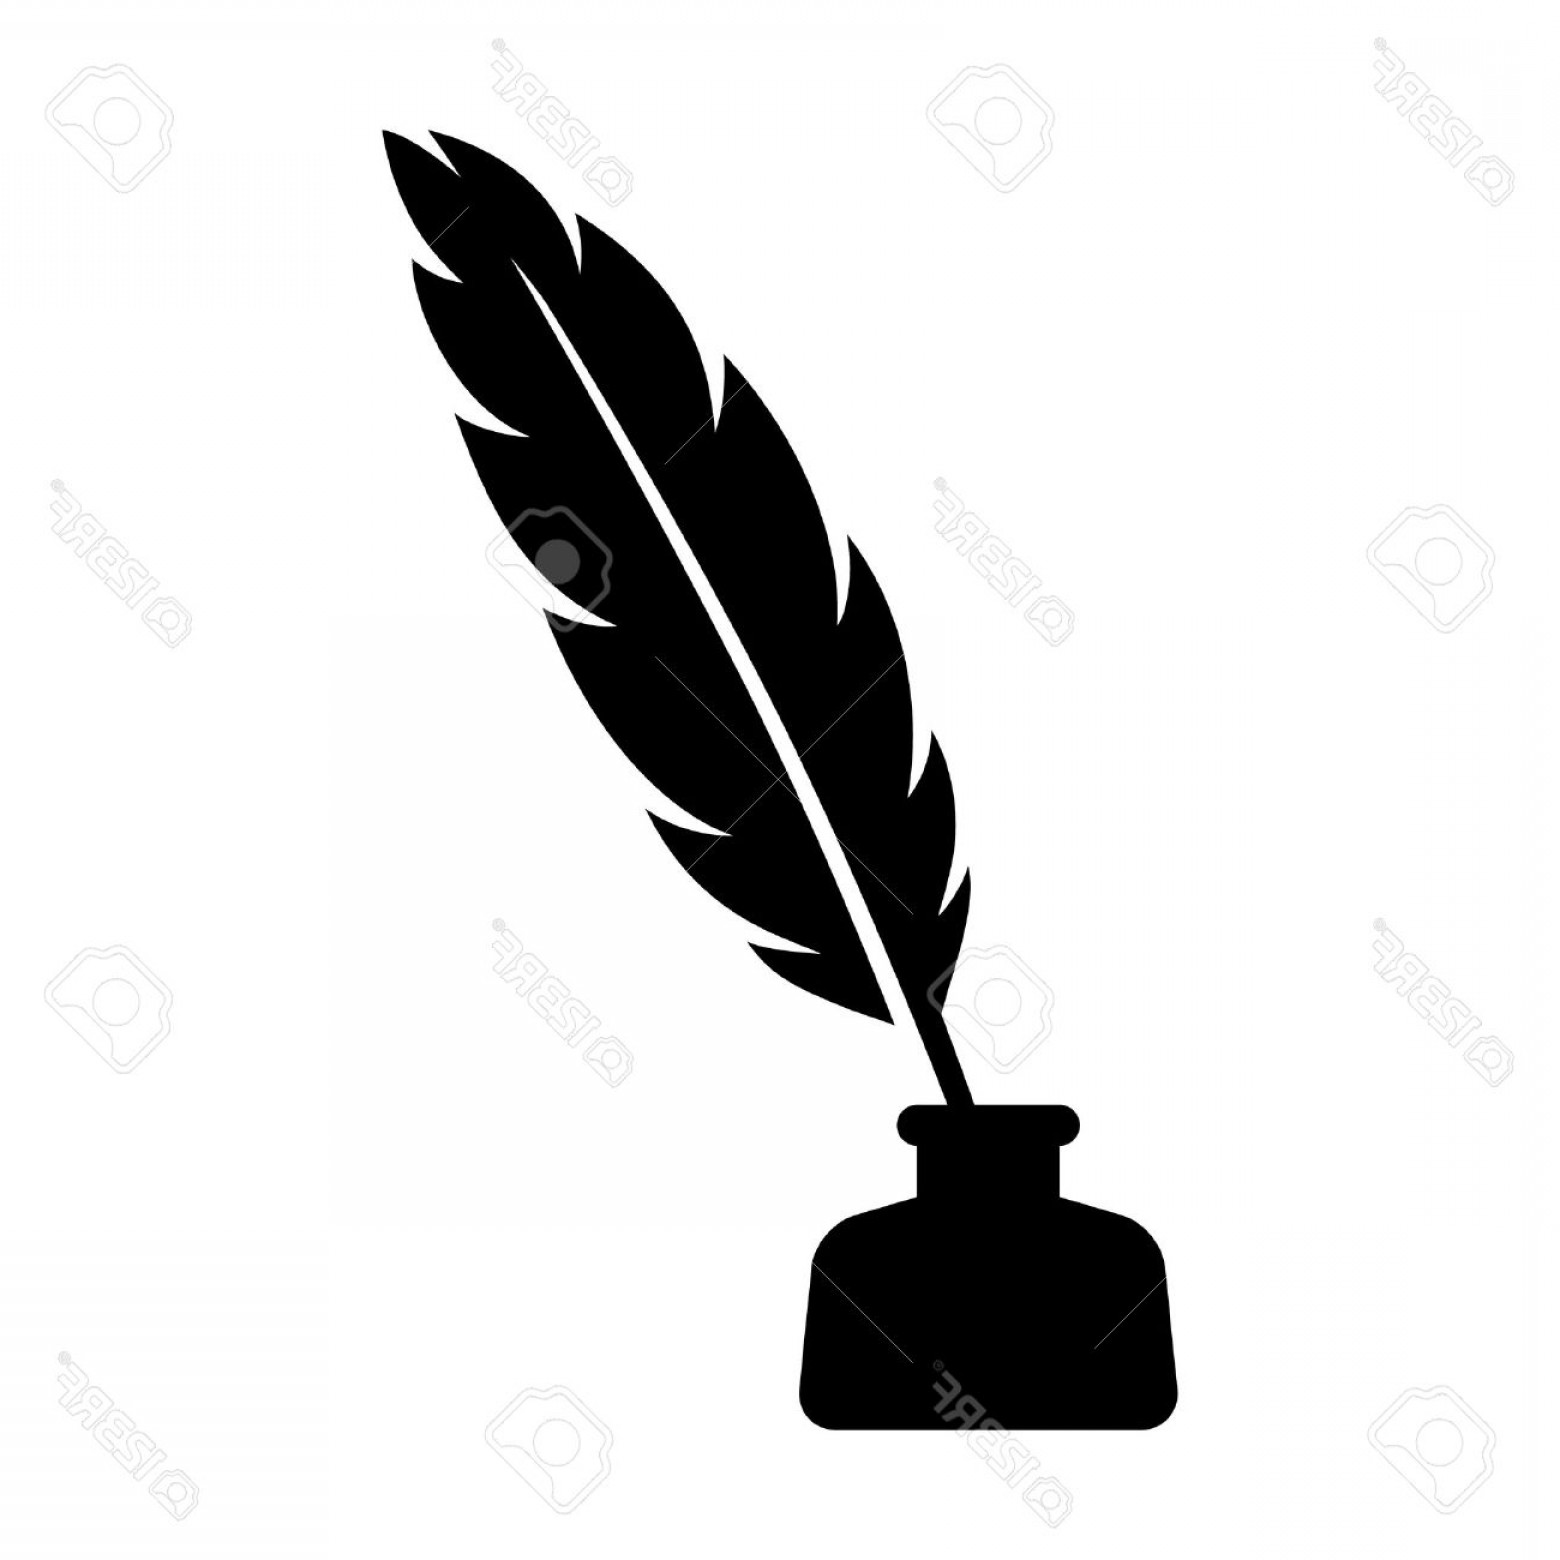 Quill Pen Vector: Photostock Vector Feather Quill Pen With Inkpot Flat Icon For Apps And Websites